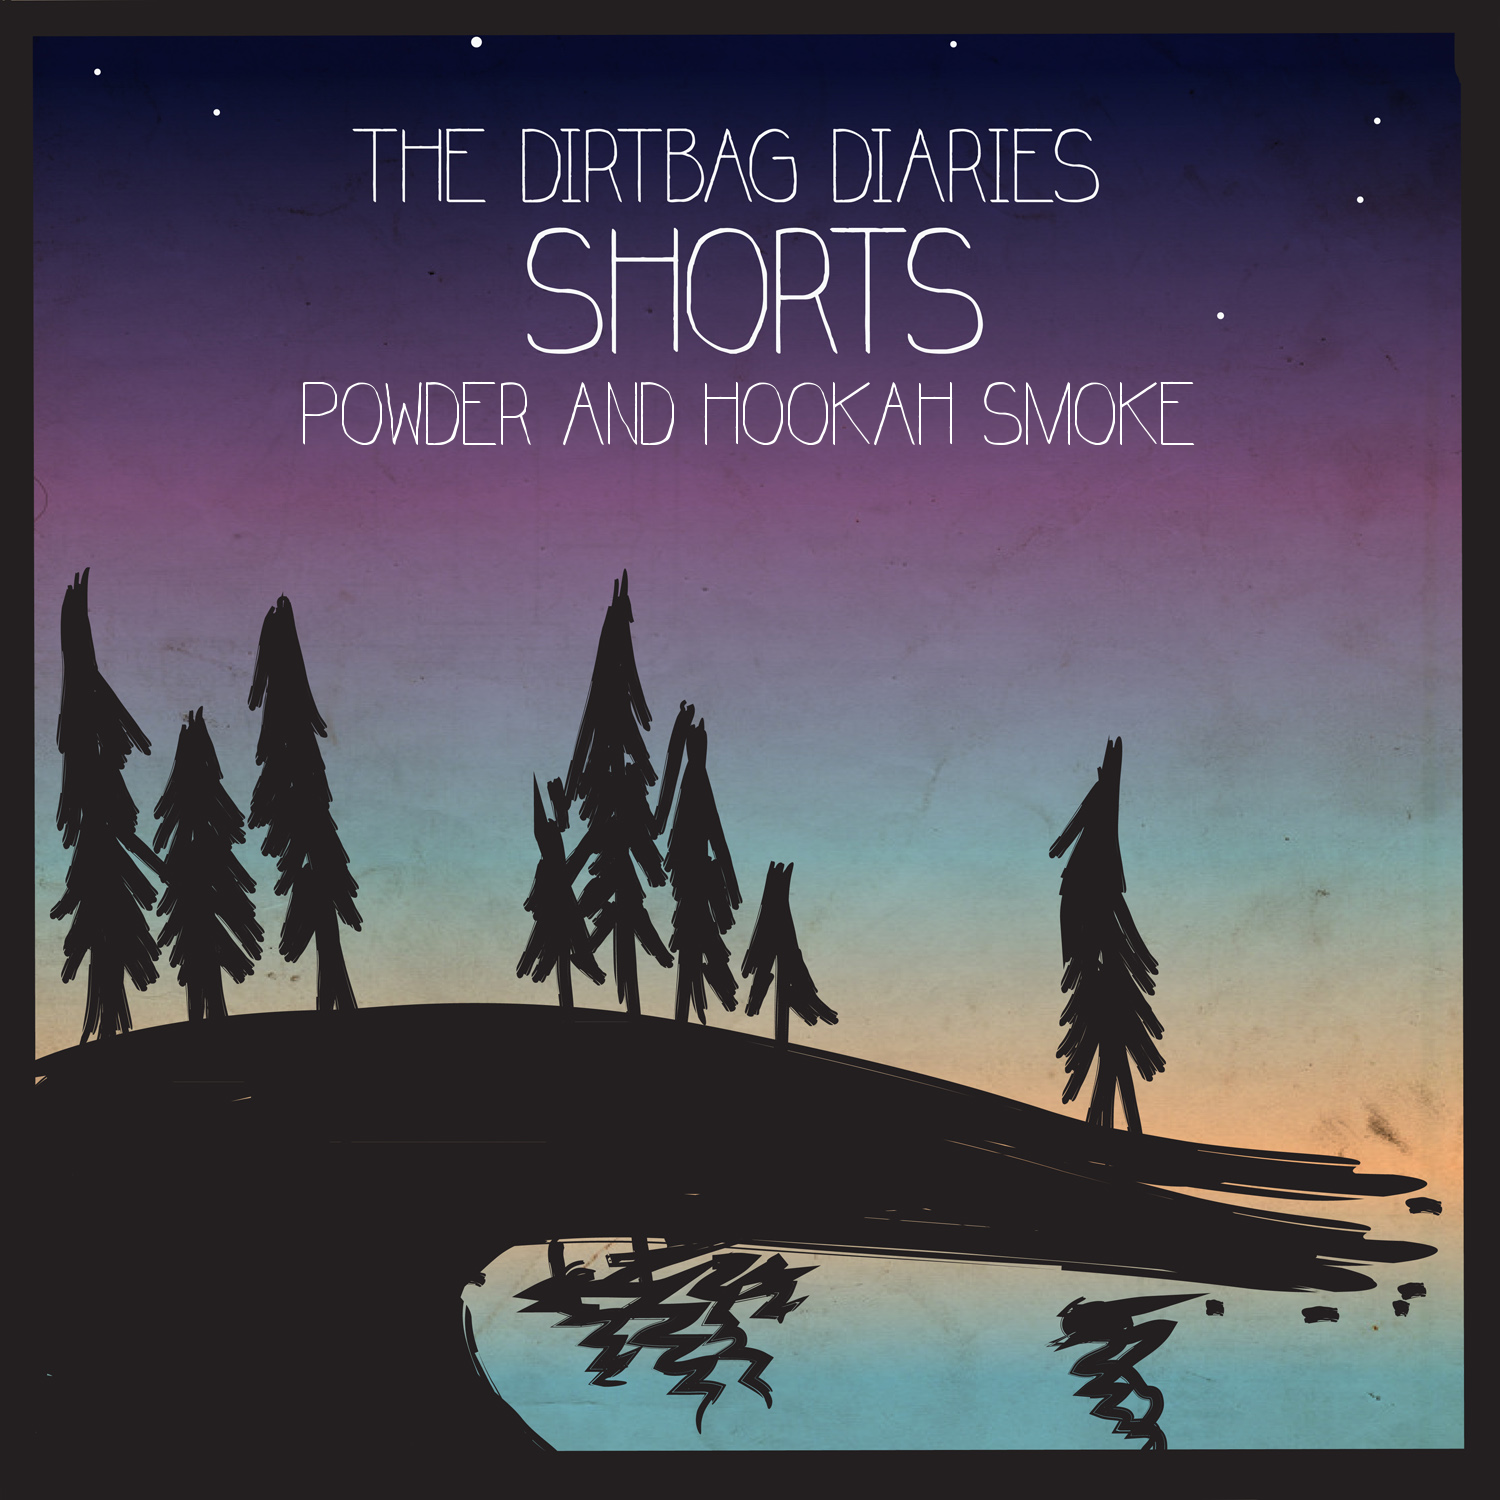 The Shorts -- Powder and Hookah Smoke | The Dirtbag Diaries